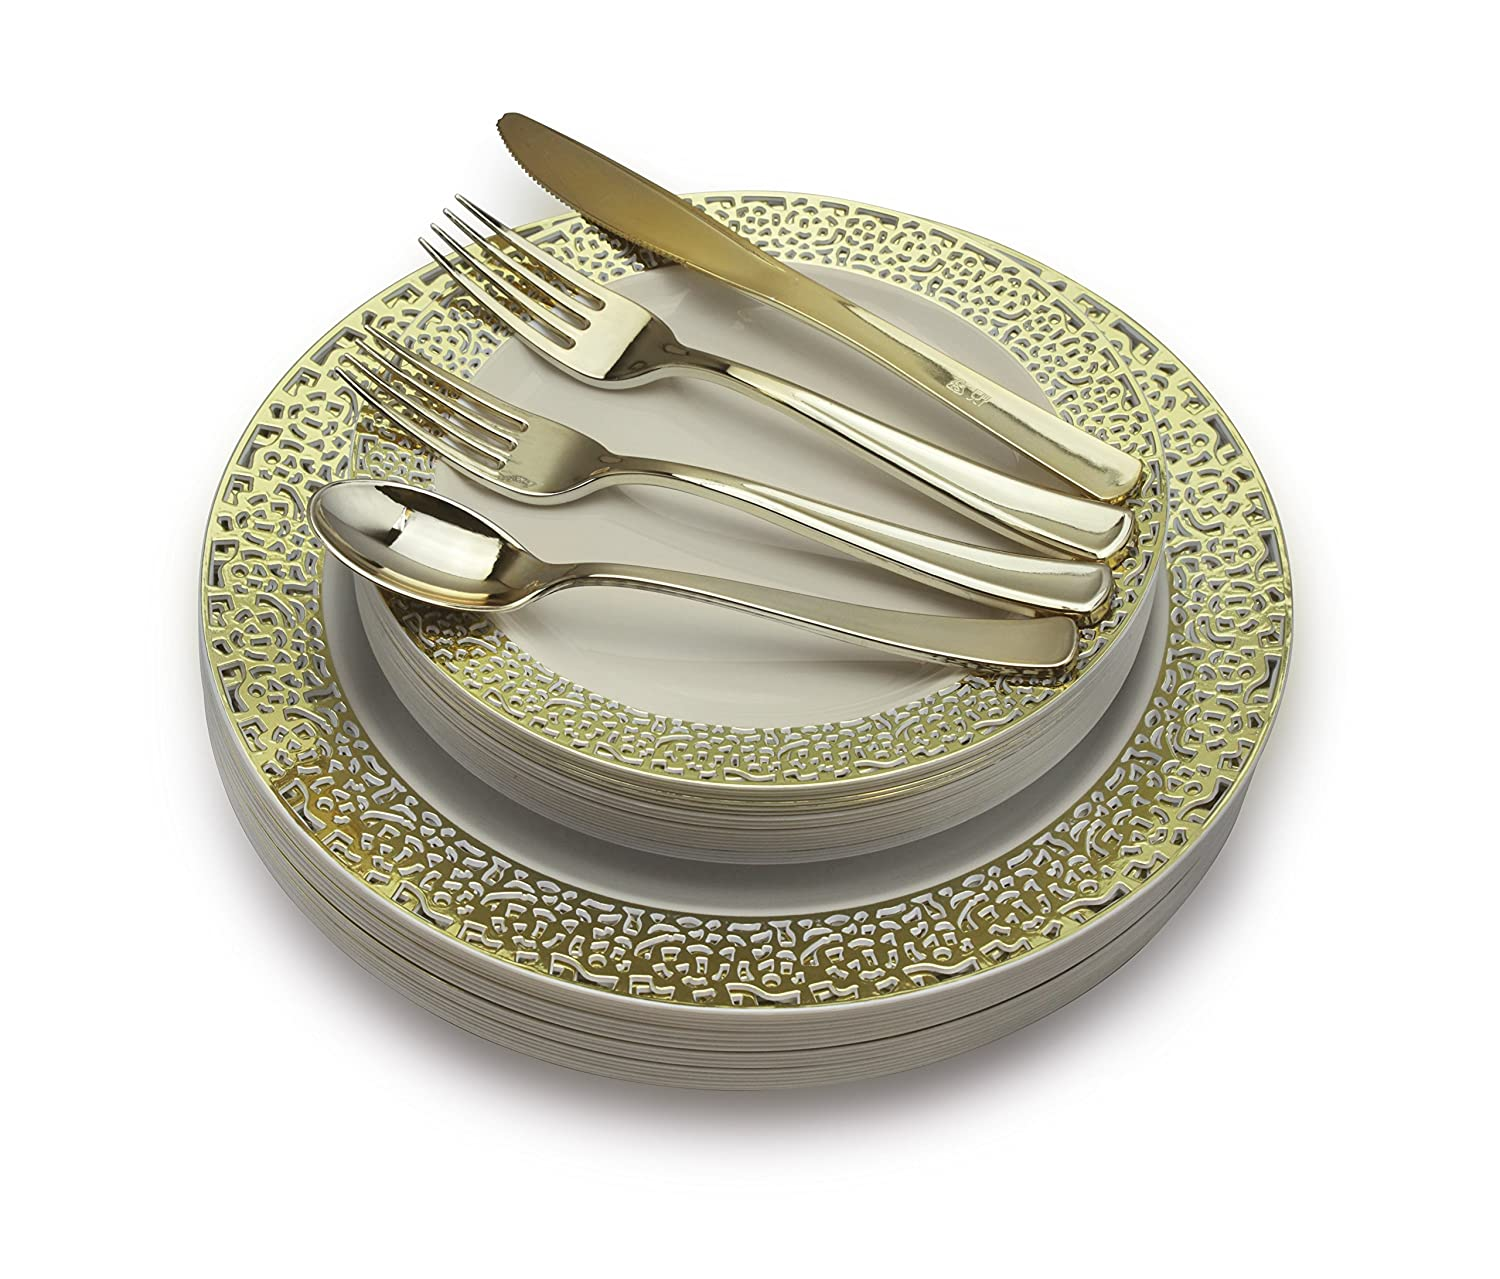 """"""" OCCASIONS"""" 360 PCS / 60 GUEST Wedding Disposable Plastic Plate and Silverware Combo Set (Celebration white/gold Plates, Gold Silverware)"""